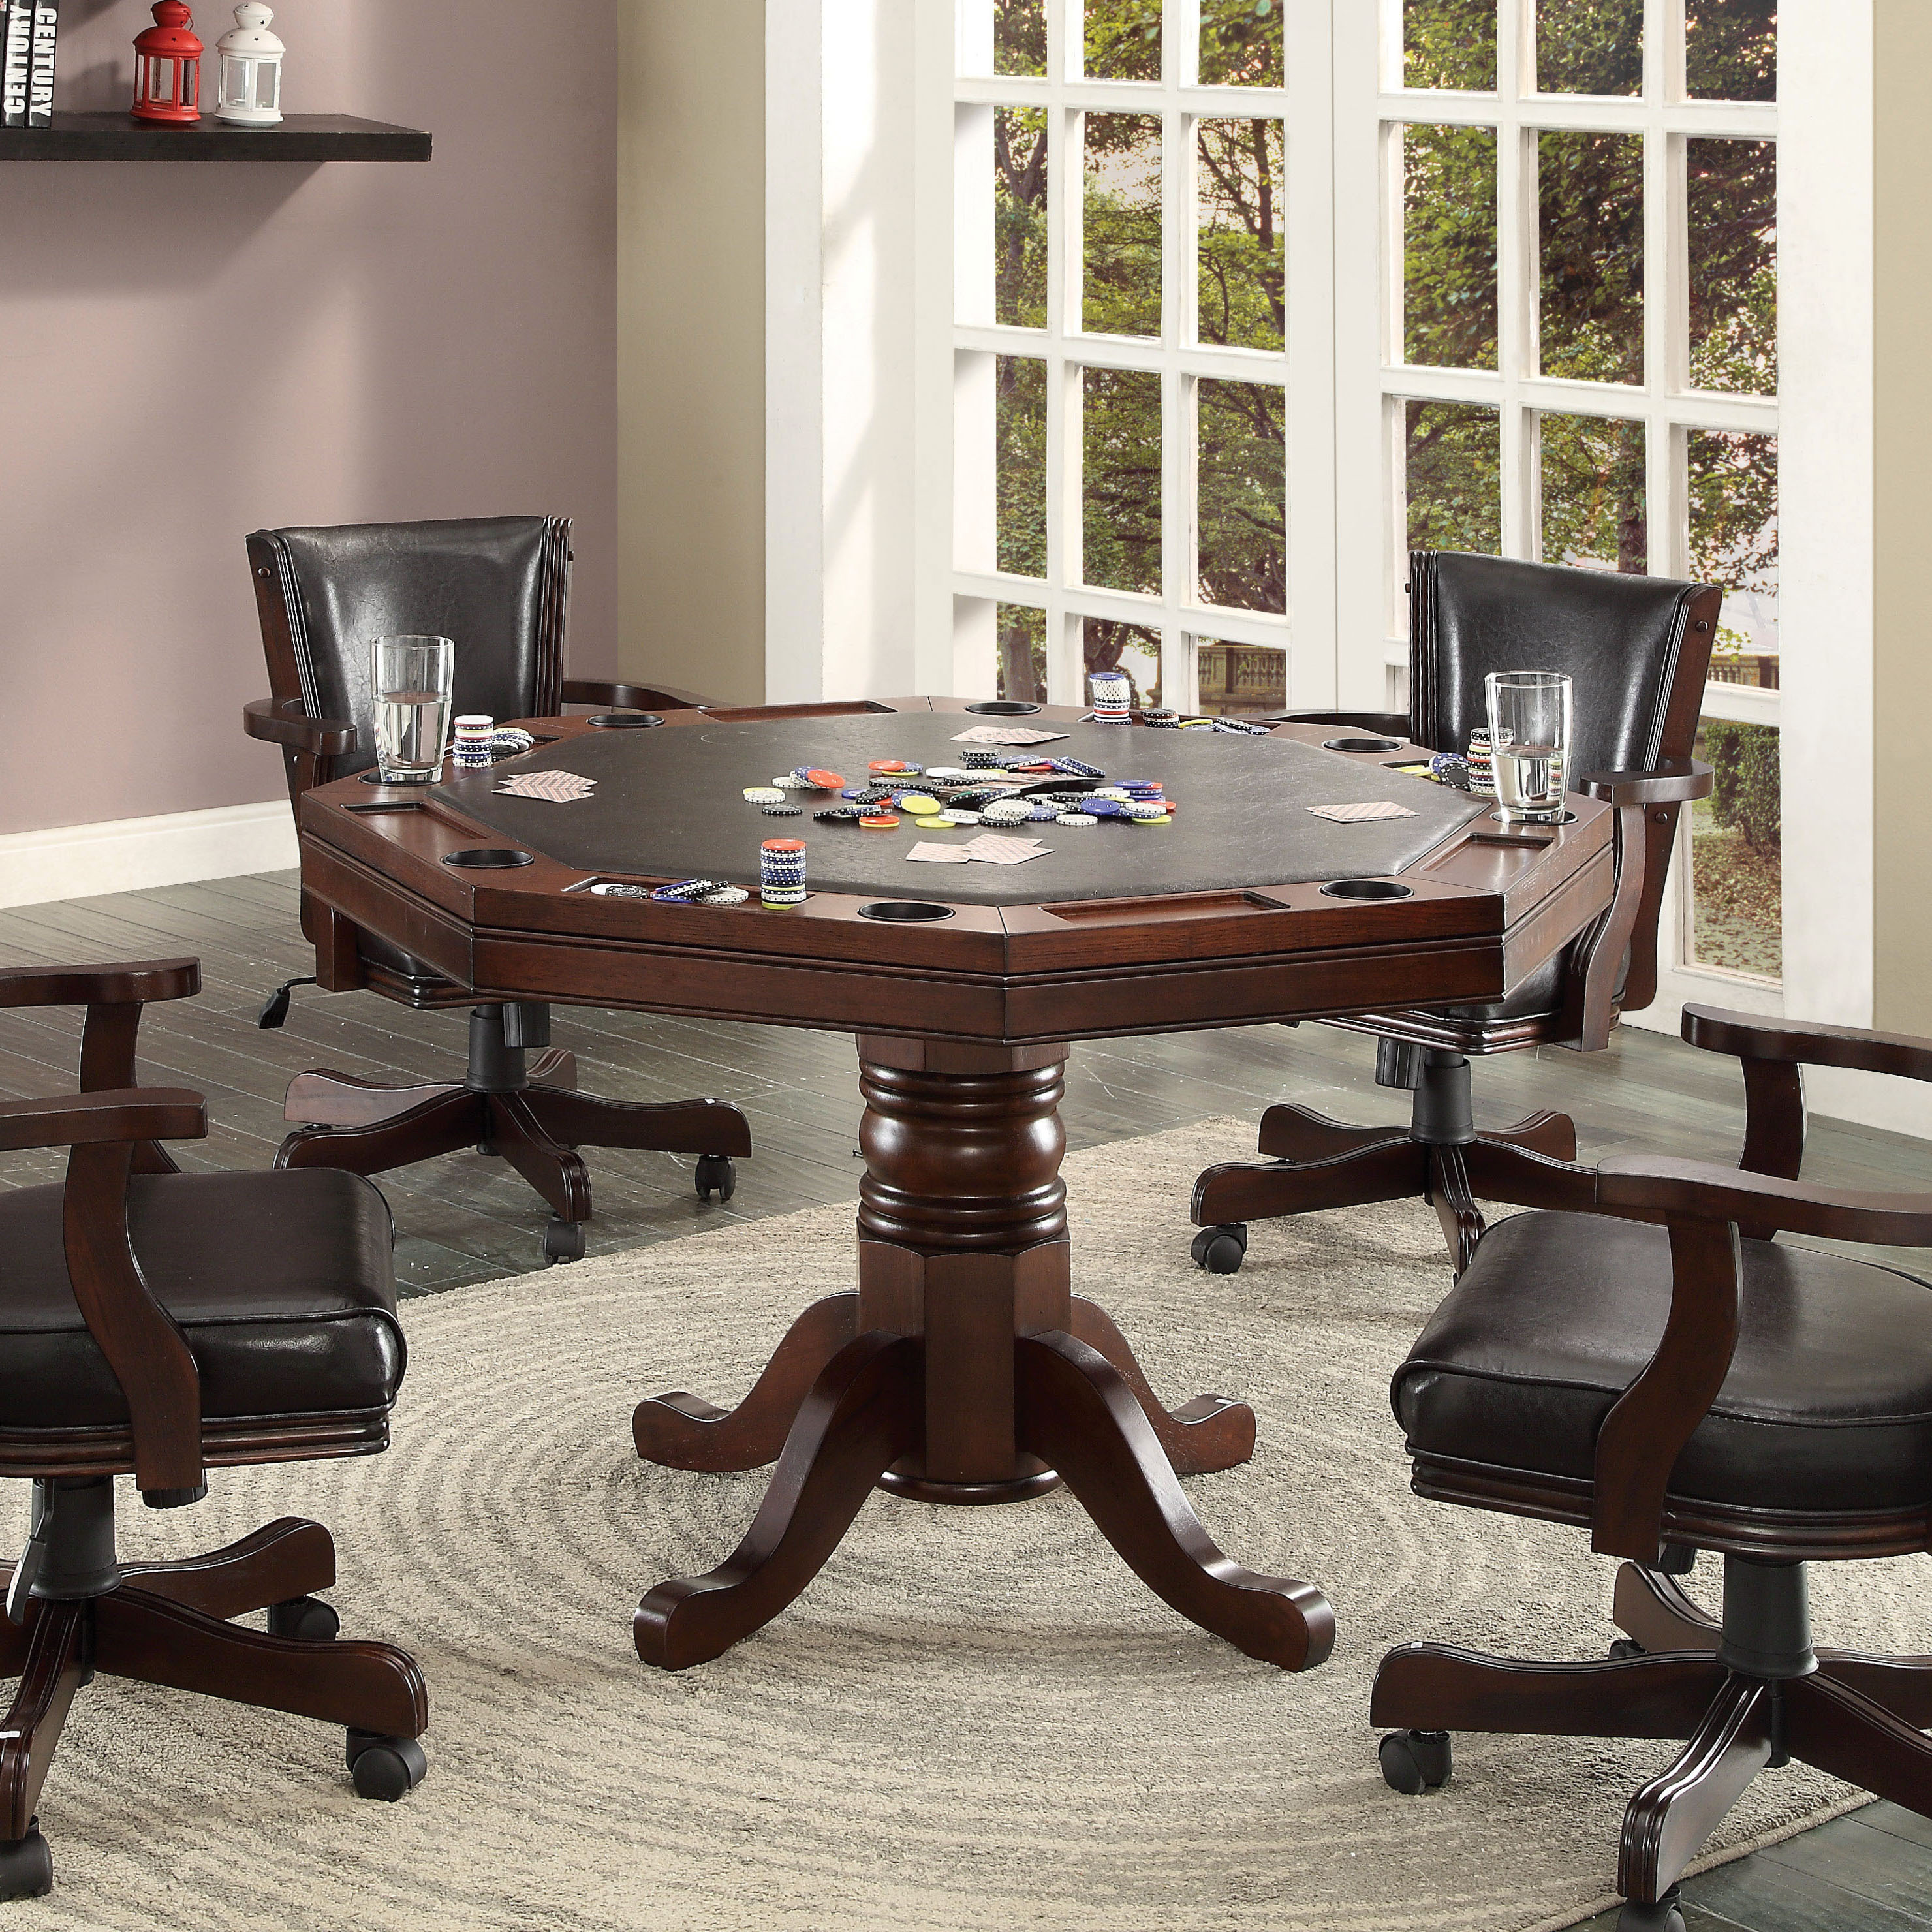 Furniture Of America Gary 3 In 1 Poker Game Table   Cherry Finish